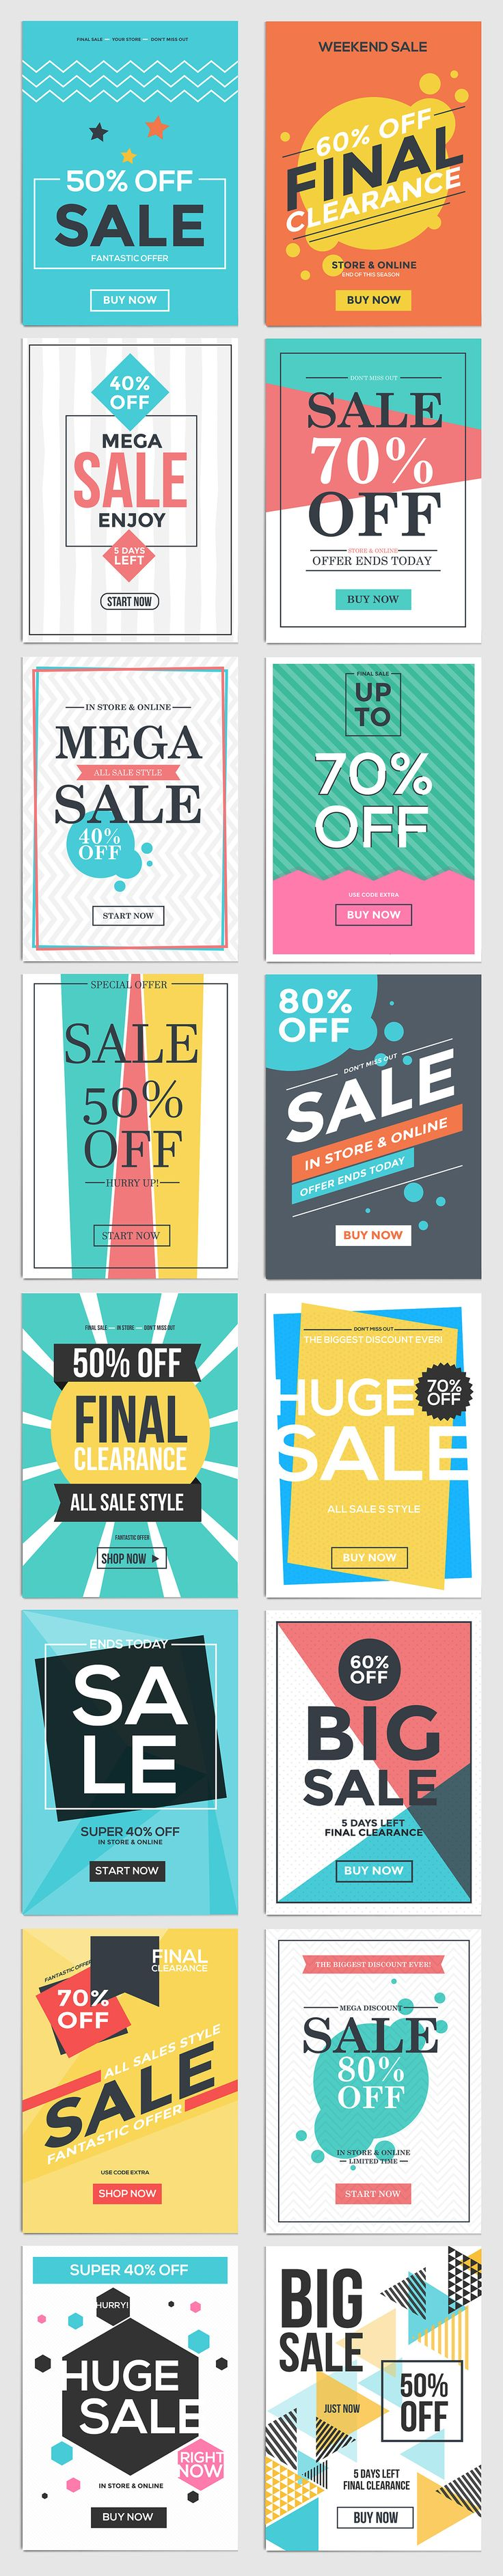 Poster design site - Flat Design Sale Flyer Templates